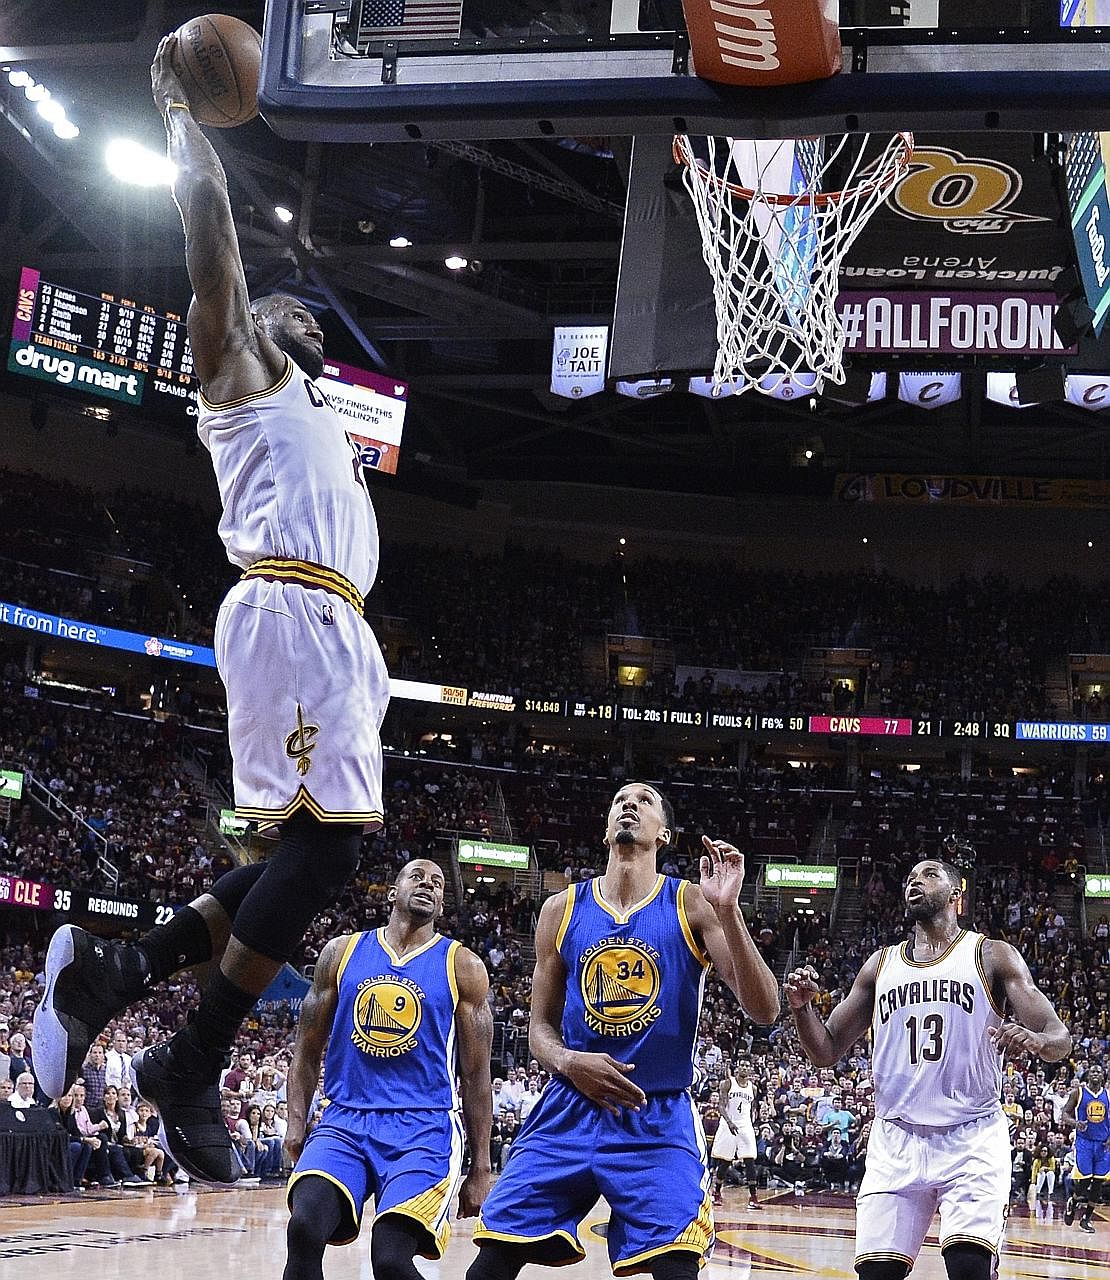 Cleveland's LeBron James dunks as Golden State's Andre Iguodala (centre) and Shaun Livingston look on. James set the tone for a 120-90 win to cut the Warriors' lead in the Finals to 2-1.